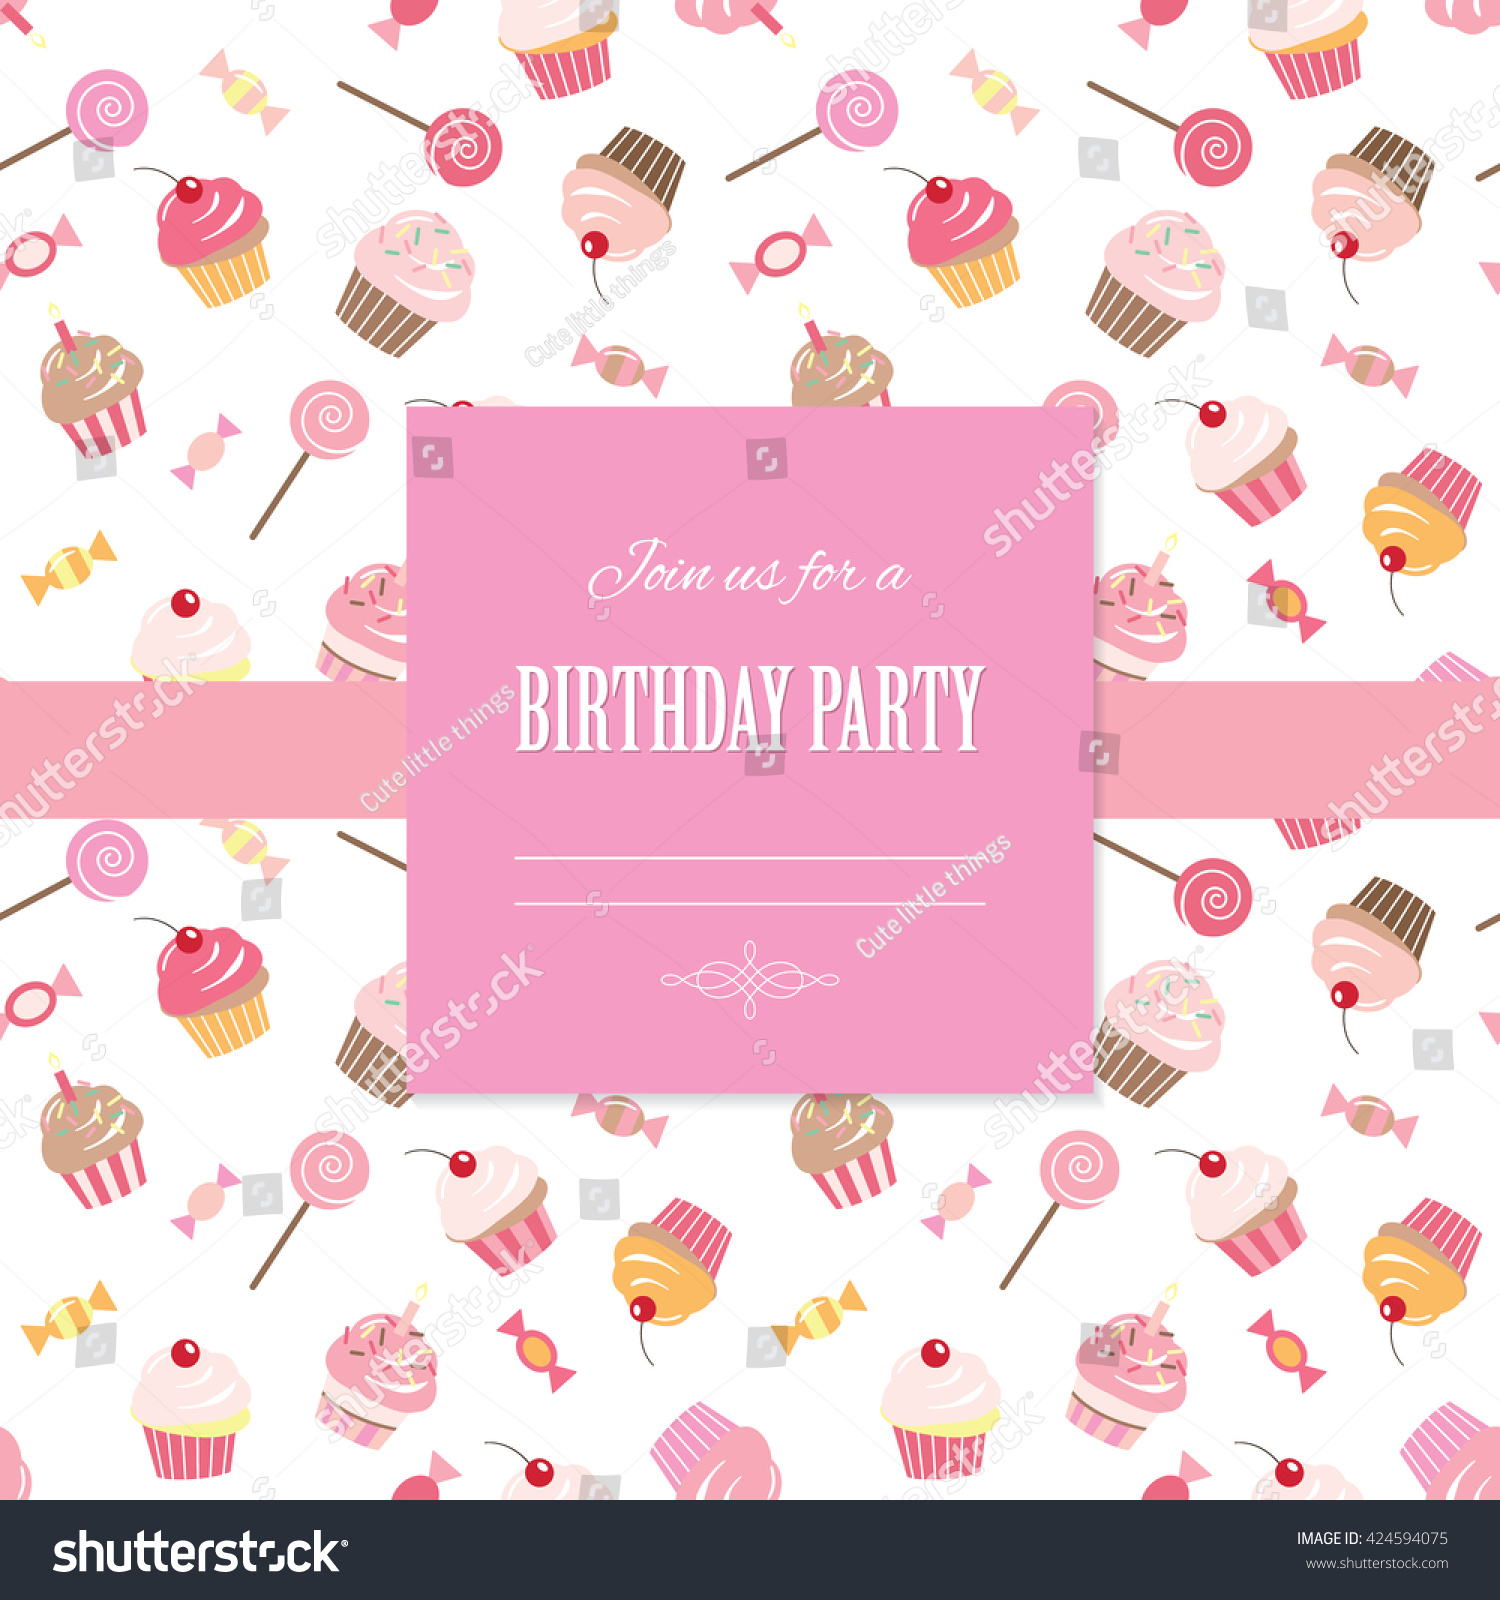 Happy birthday card invitation template seamless stock vector happy birthday card invitation template seamless pattern with cupcakes and sweets included stopboris Choice Image